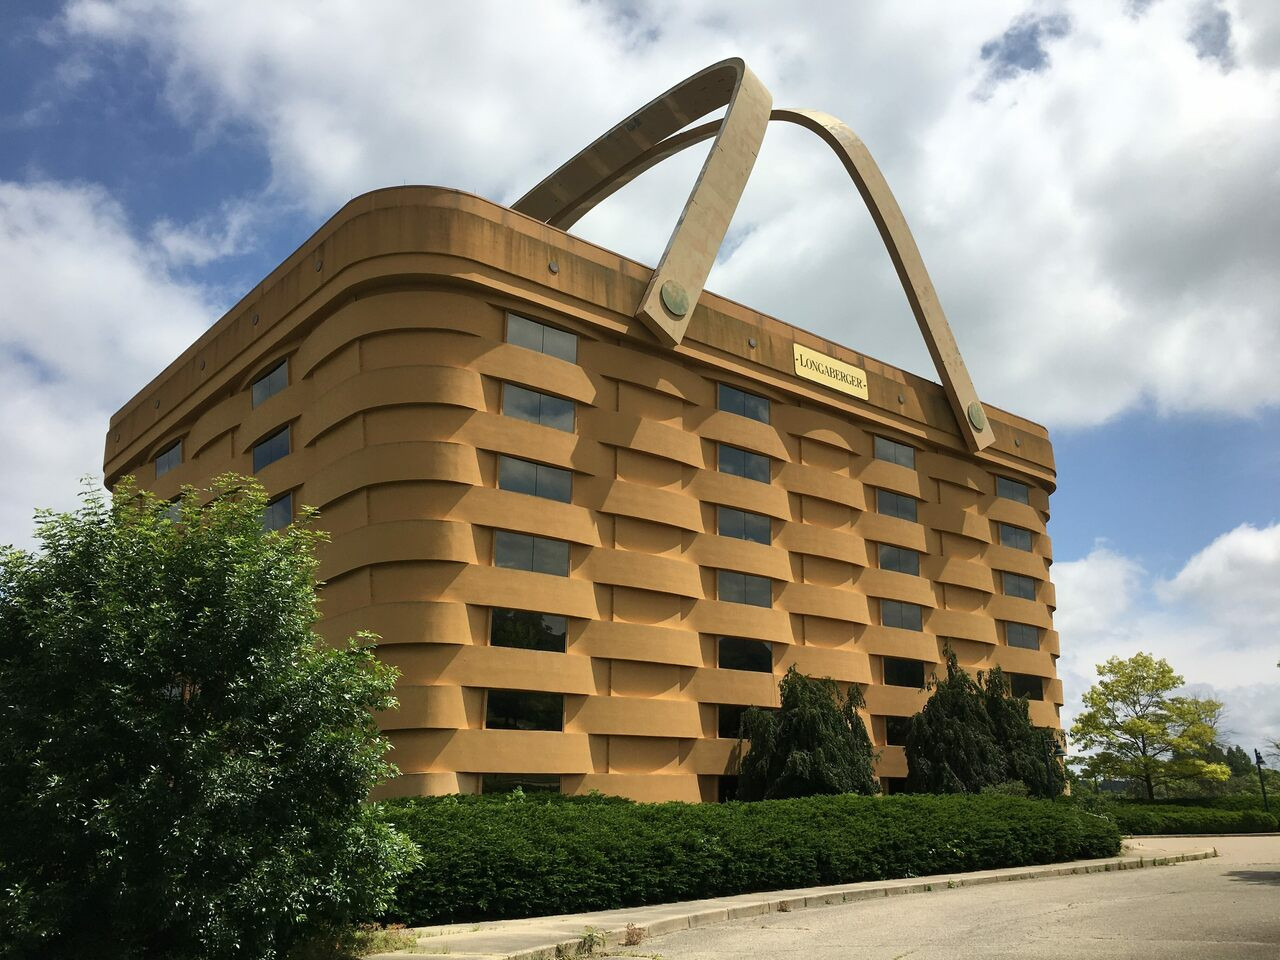 This bizarre building is set to become Ohio's newest luxury resort.